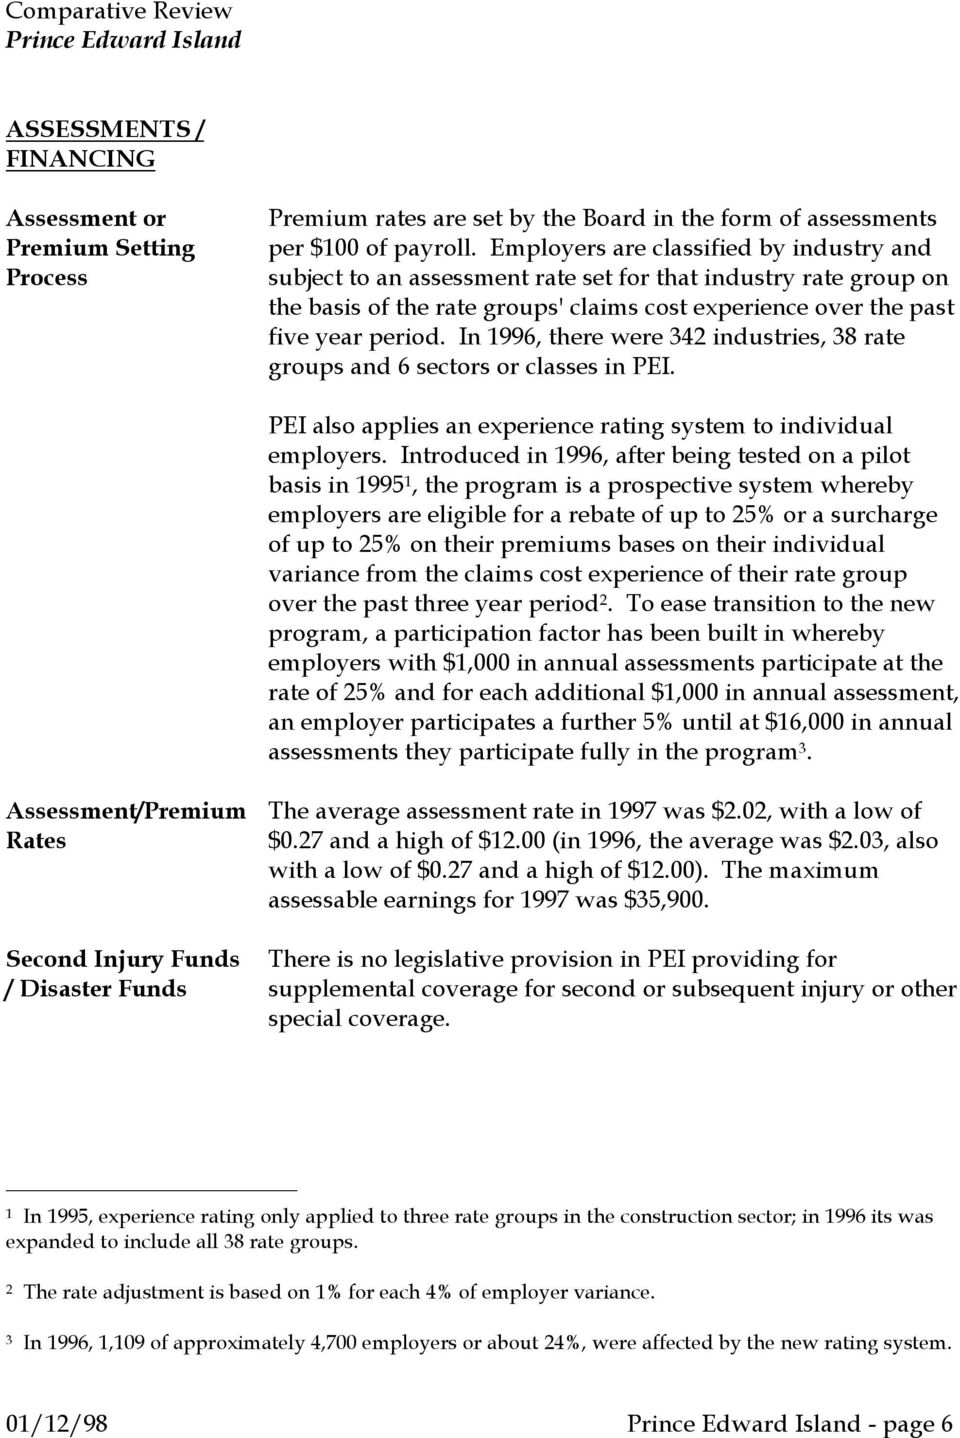 In 1996, there were 342 industries, 38 rate groups and 6 sectors or classes in PEI. PEI also applies an experience rating system to individual employers.